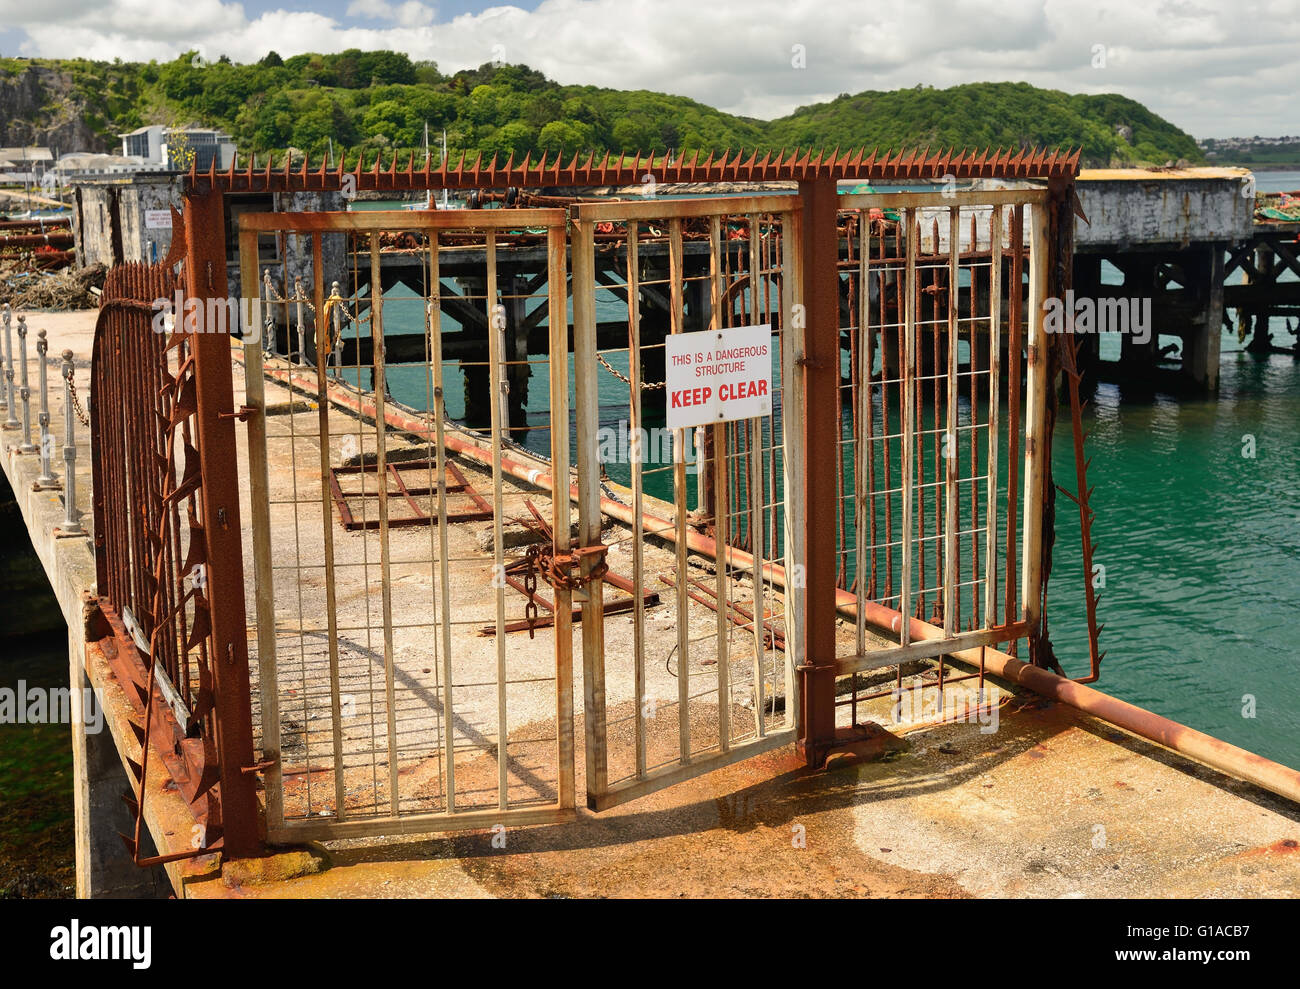 Rusty gates and fencing around a dangerous structure. - Stock Image